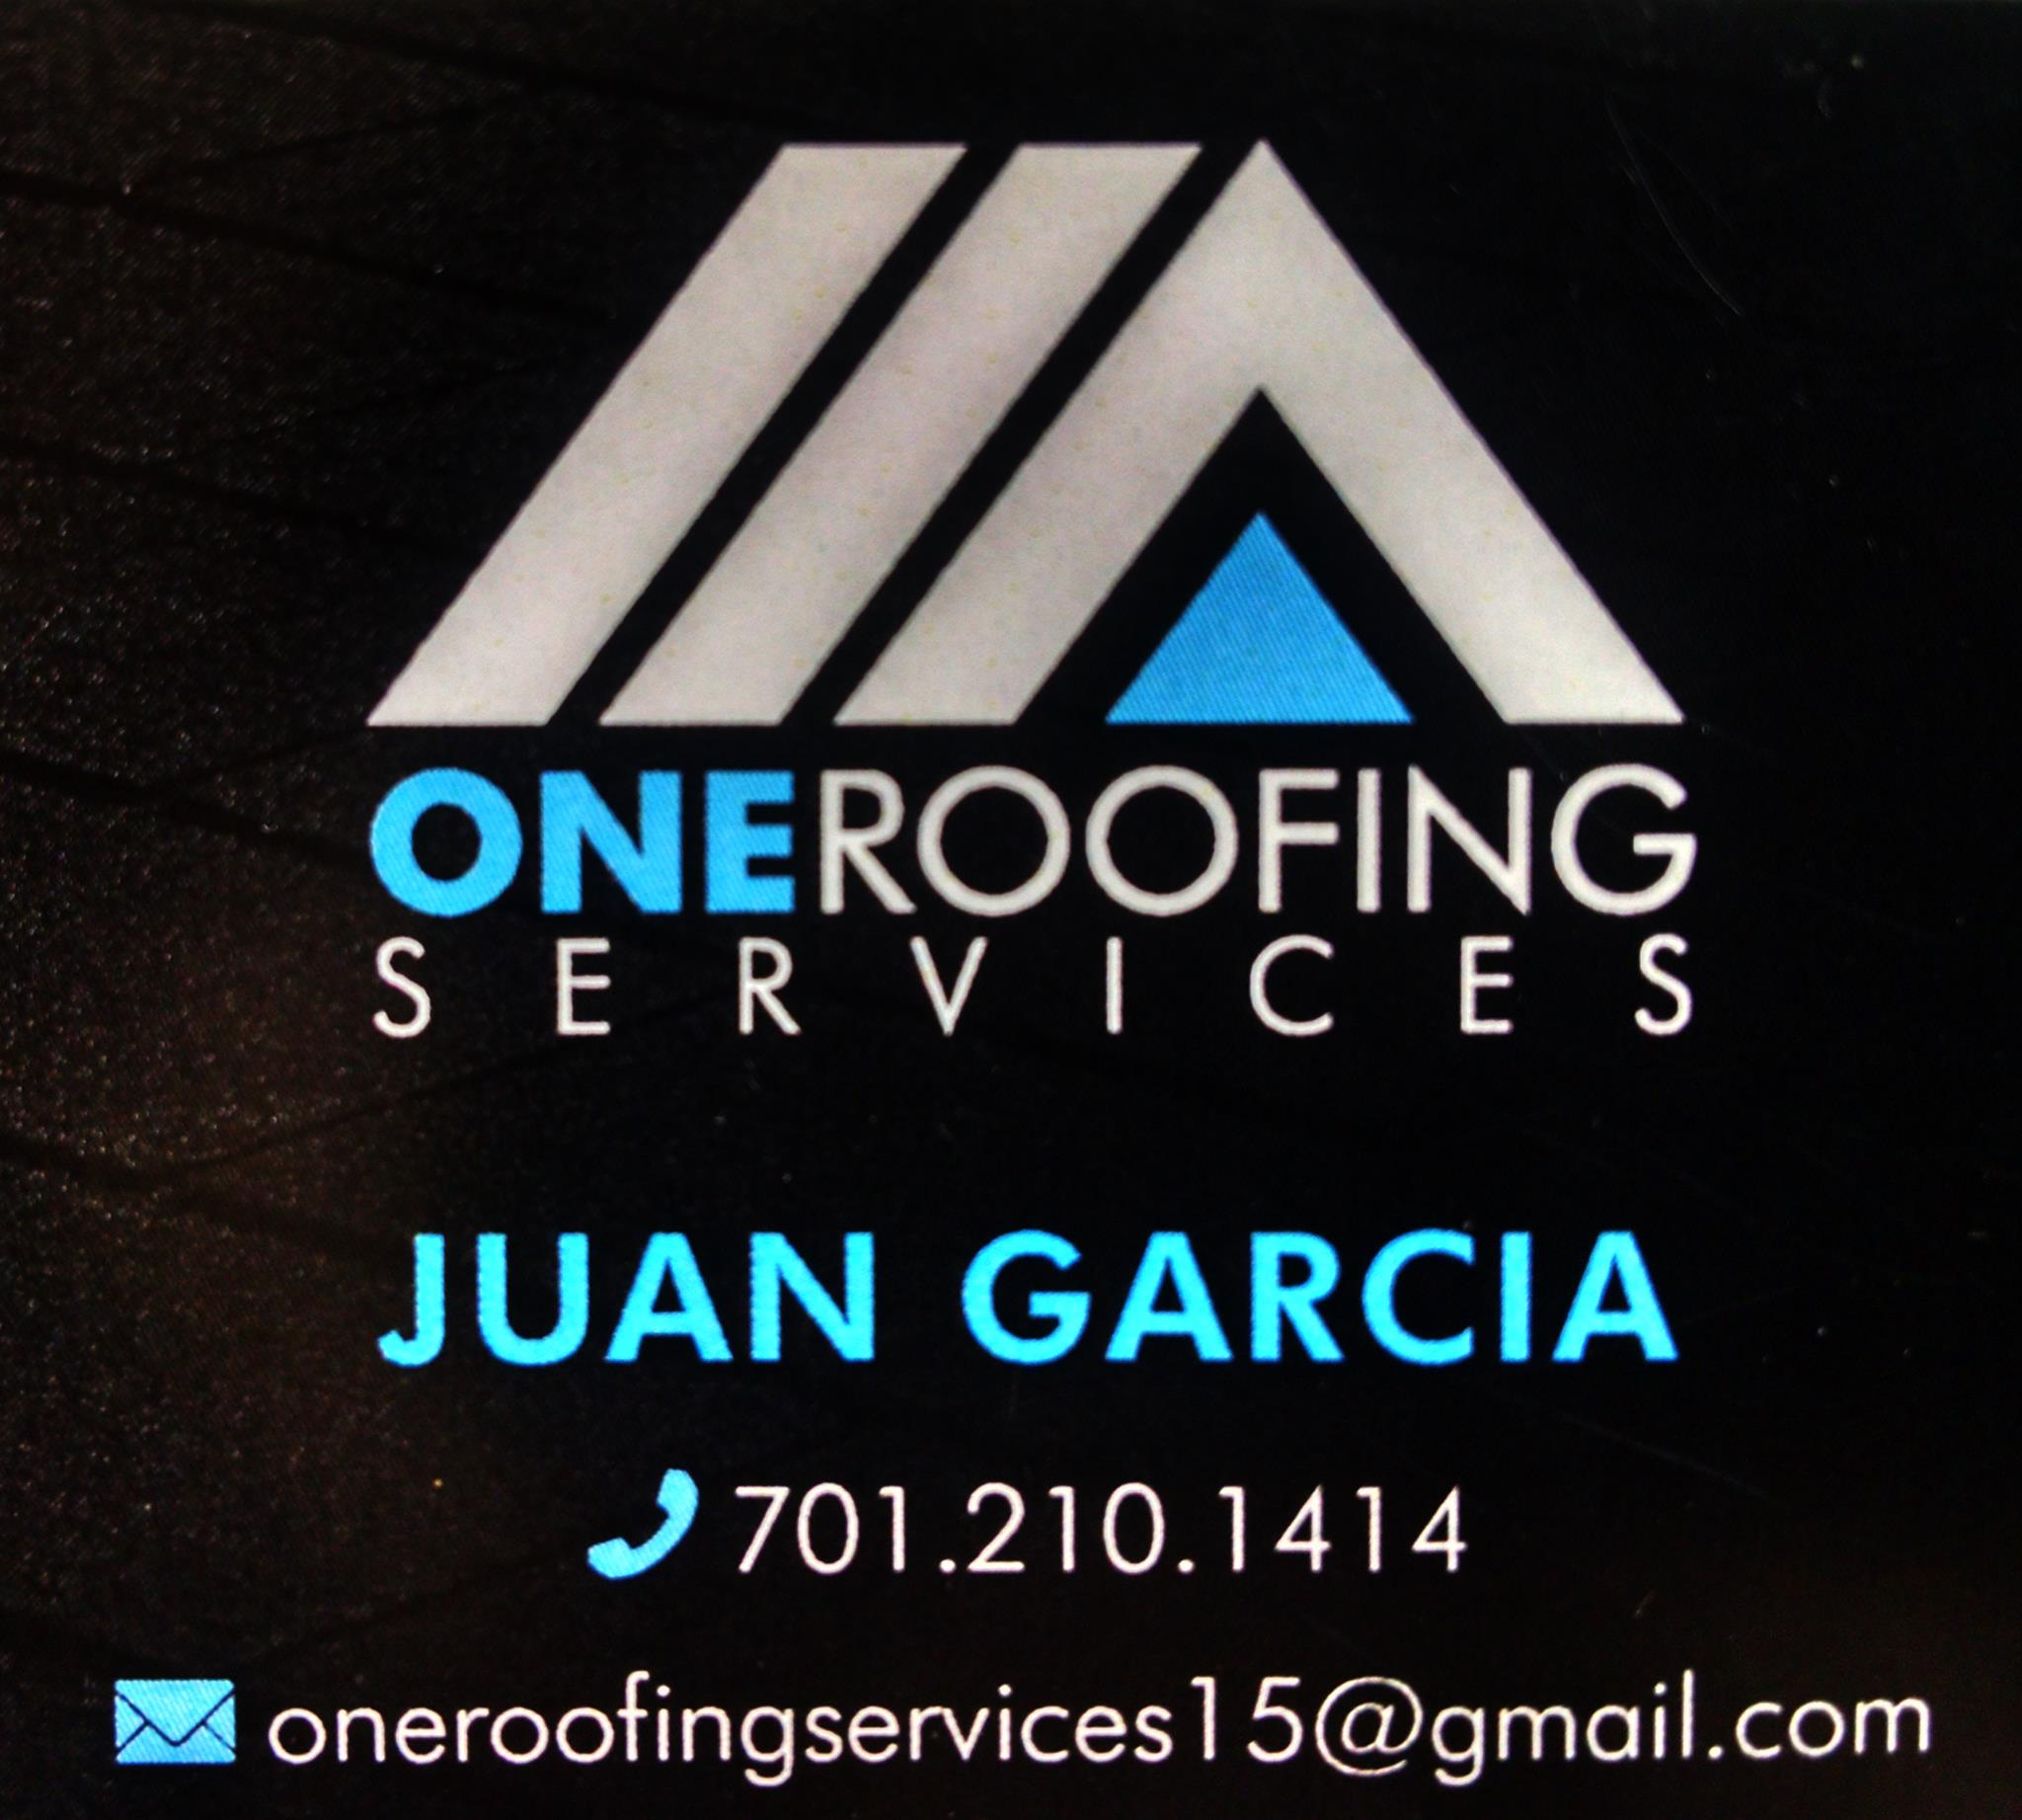 One Roofing Services